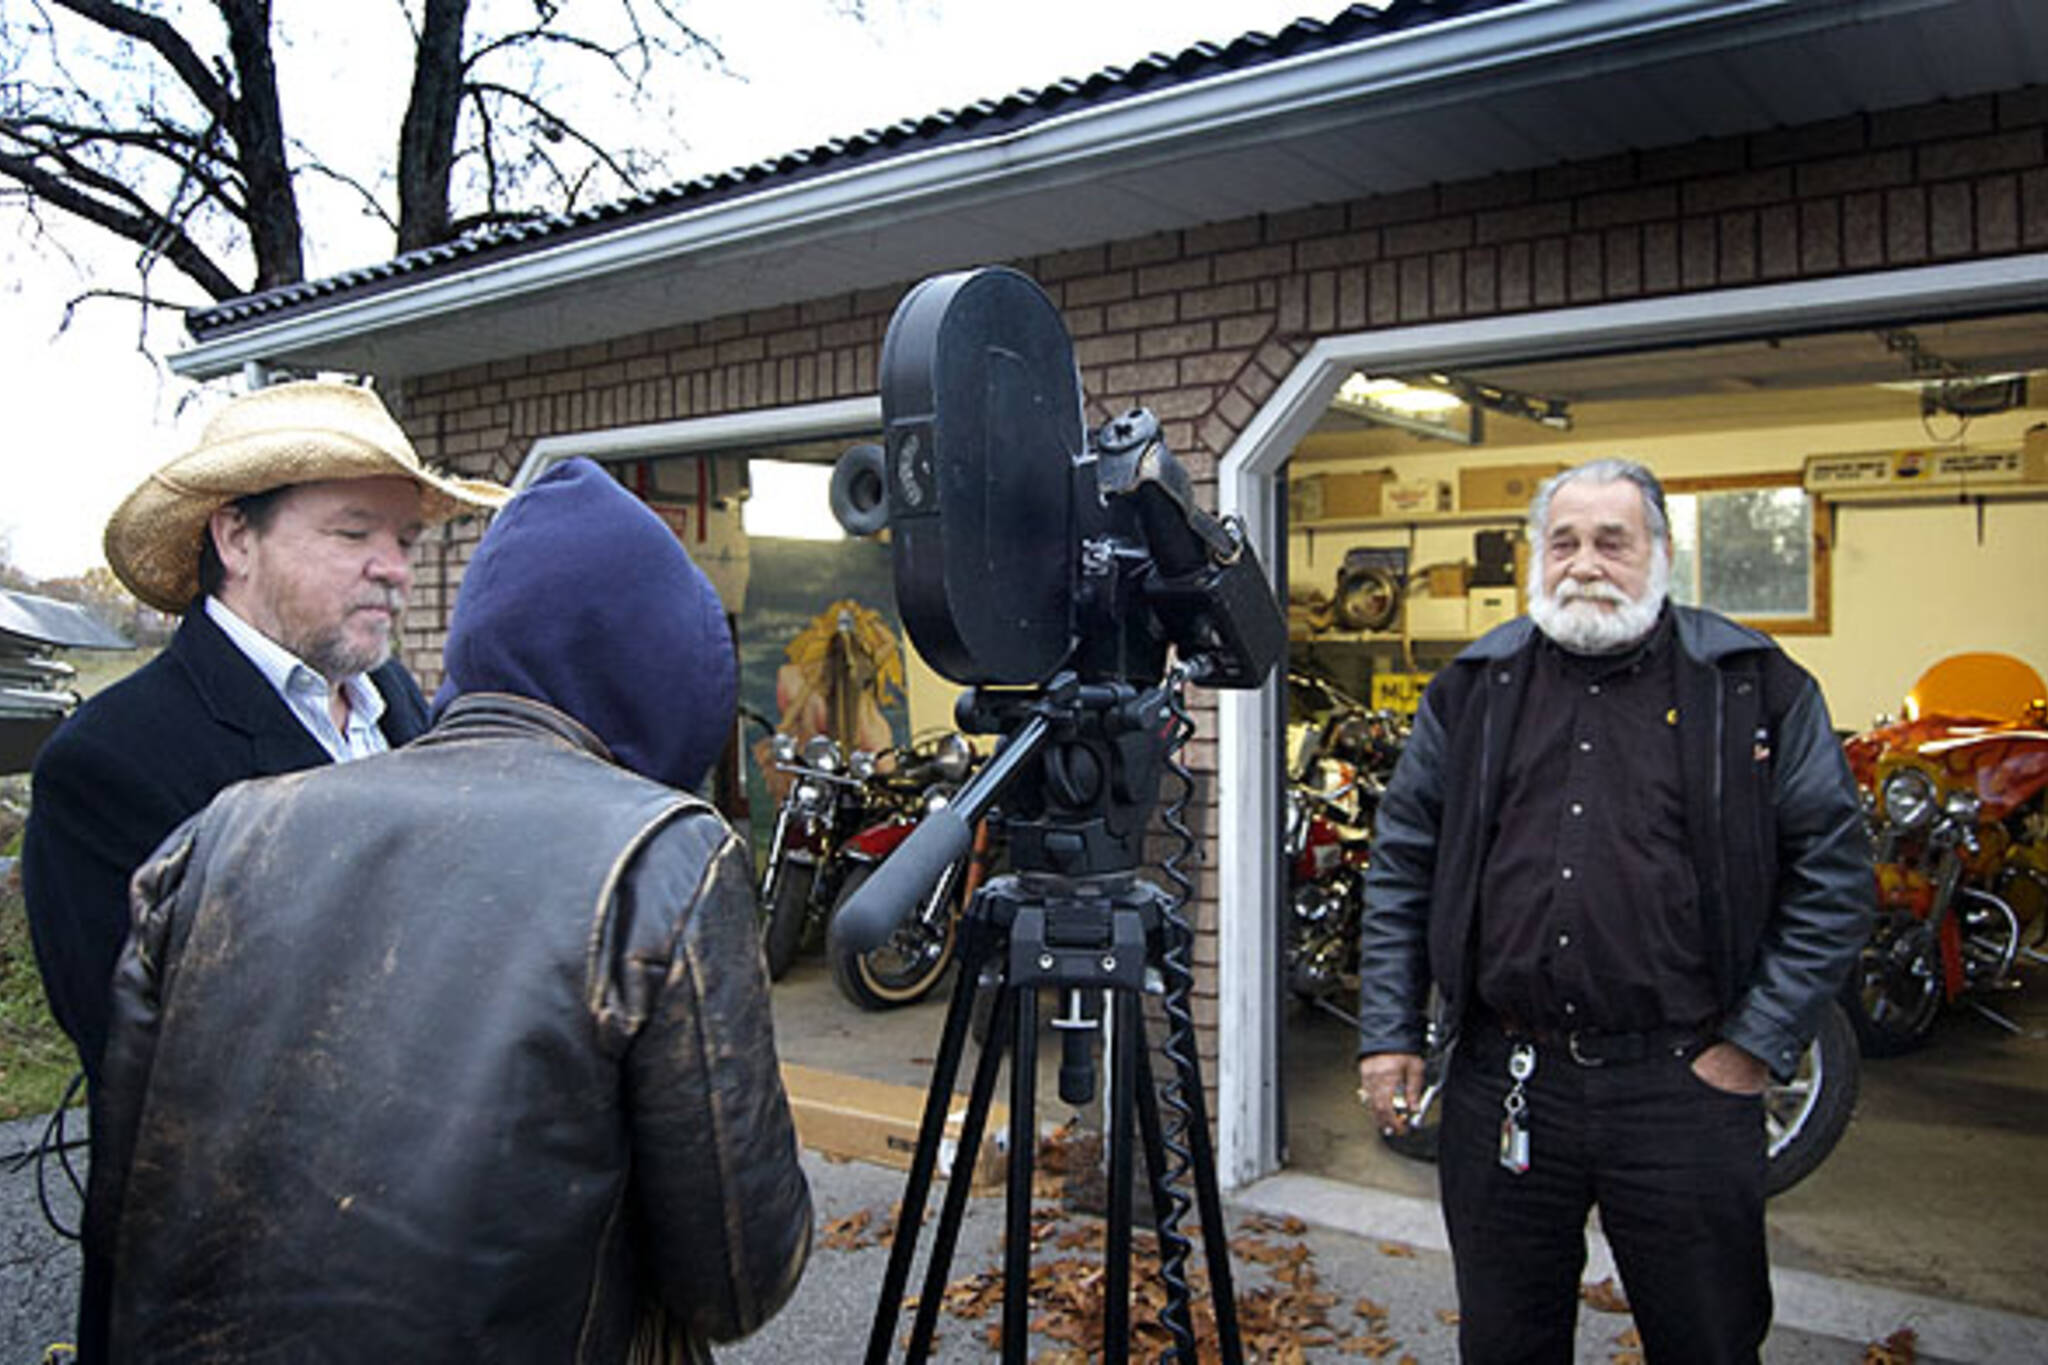 Bruce McDonald films Edjo, former head of the Vagabonds bike gang, for Yonge Street: Toronto Rock and Roll Stories